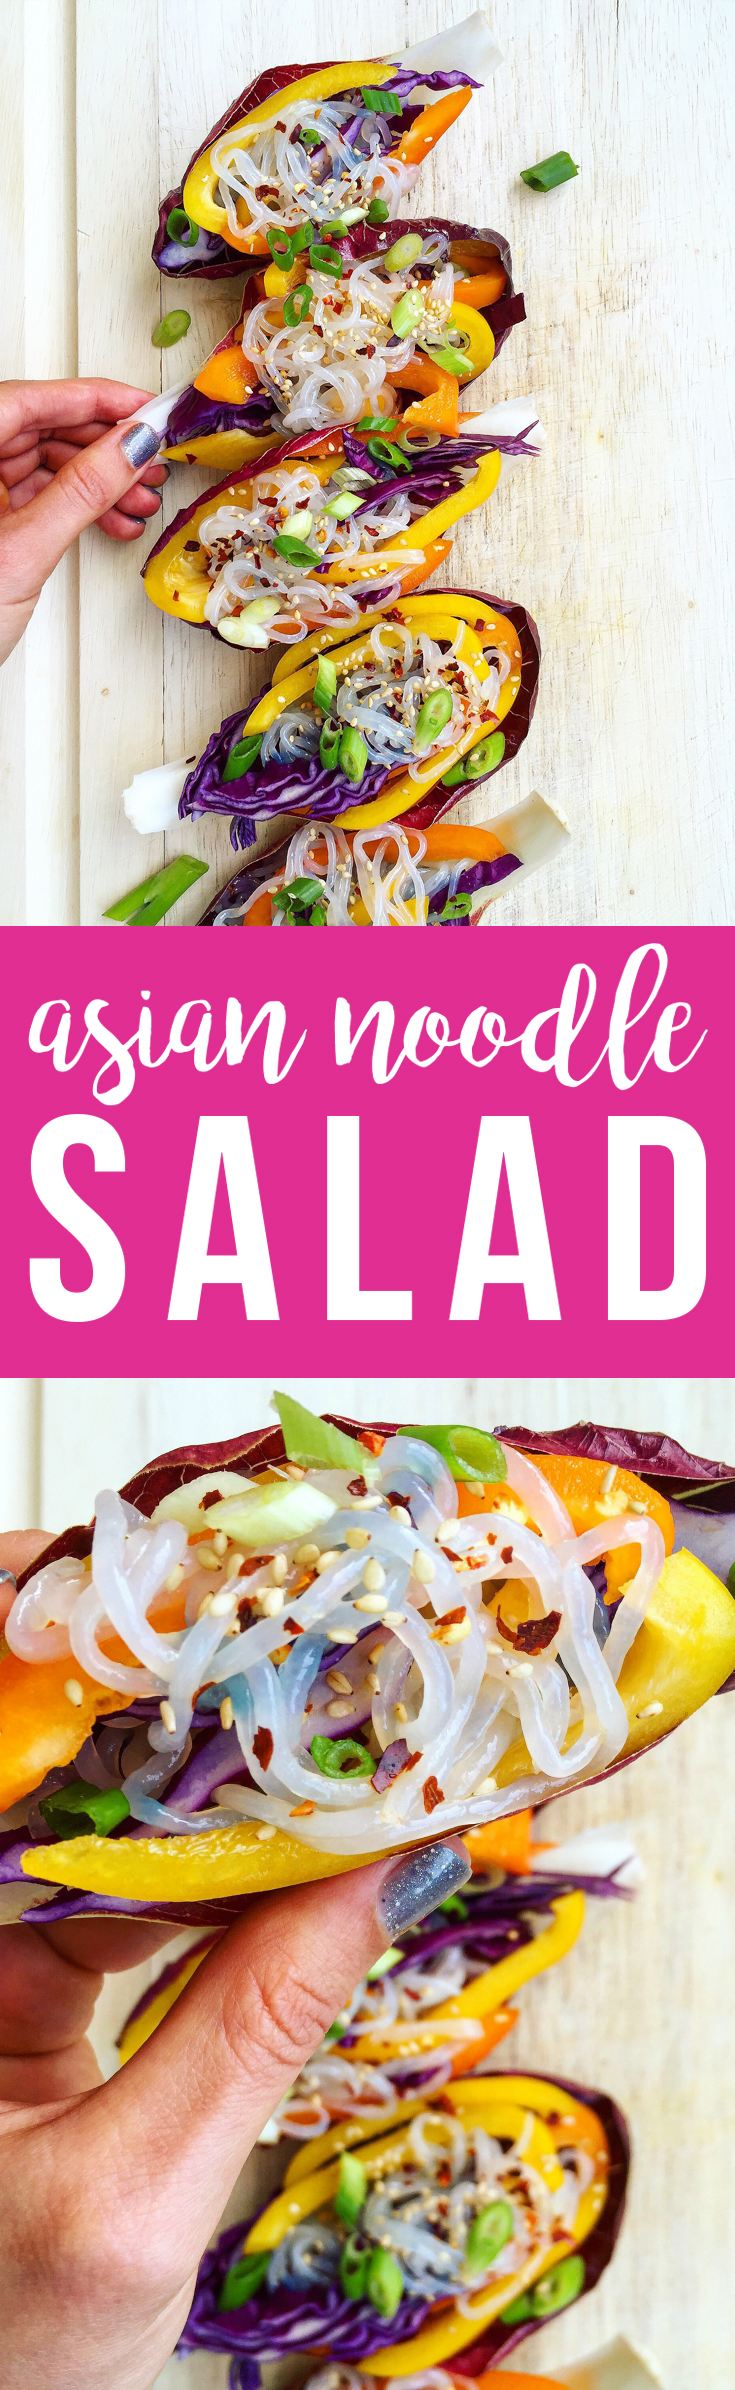 This simple, refreshing Asian Noodle Salad is full of fresh vegetables in a light sesame sauce.